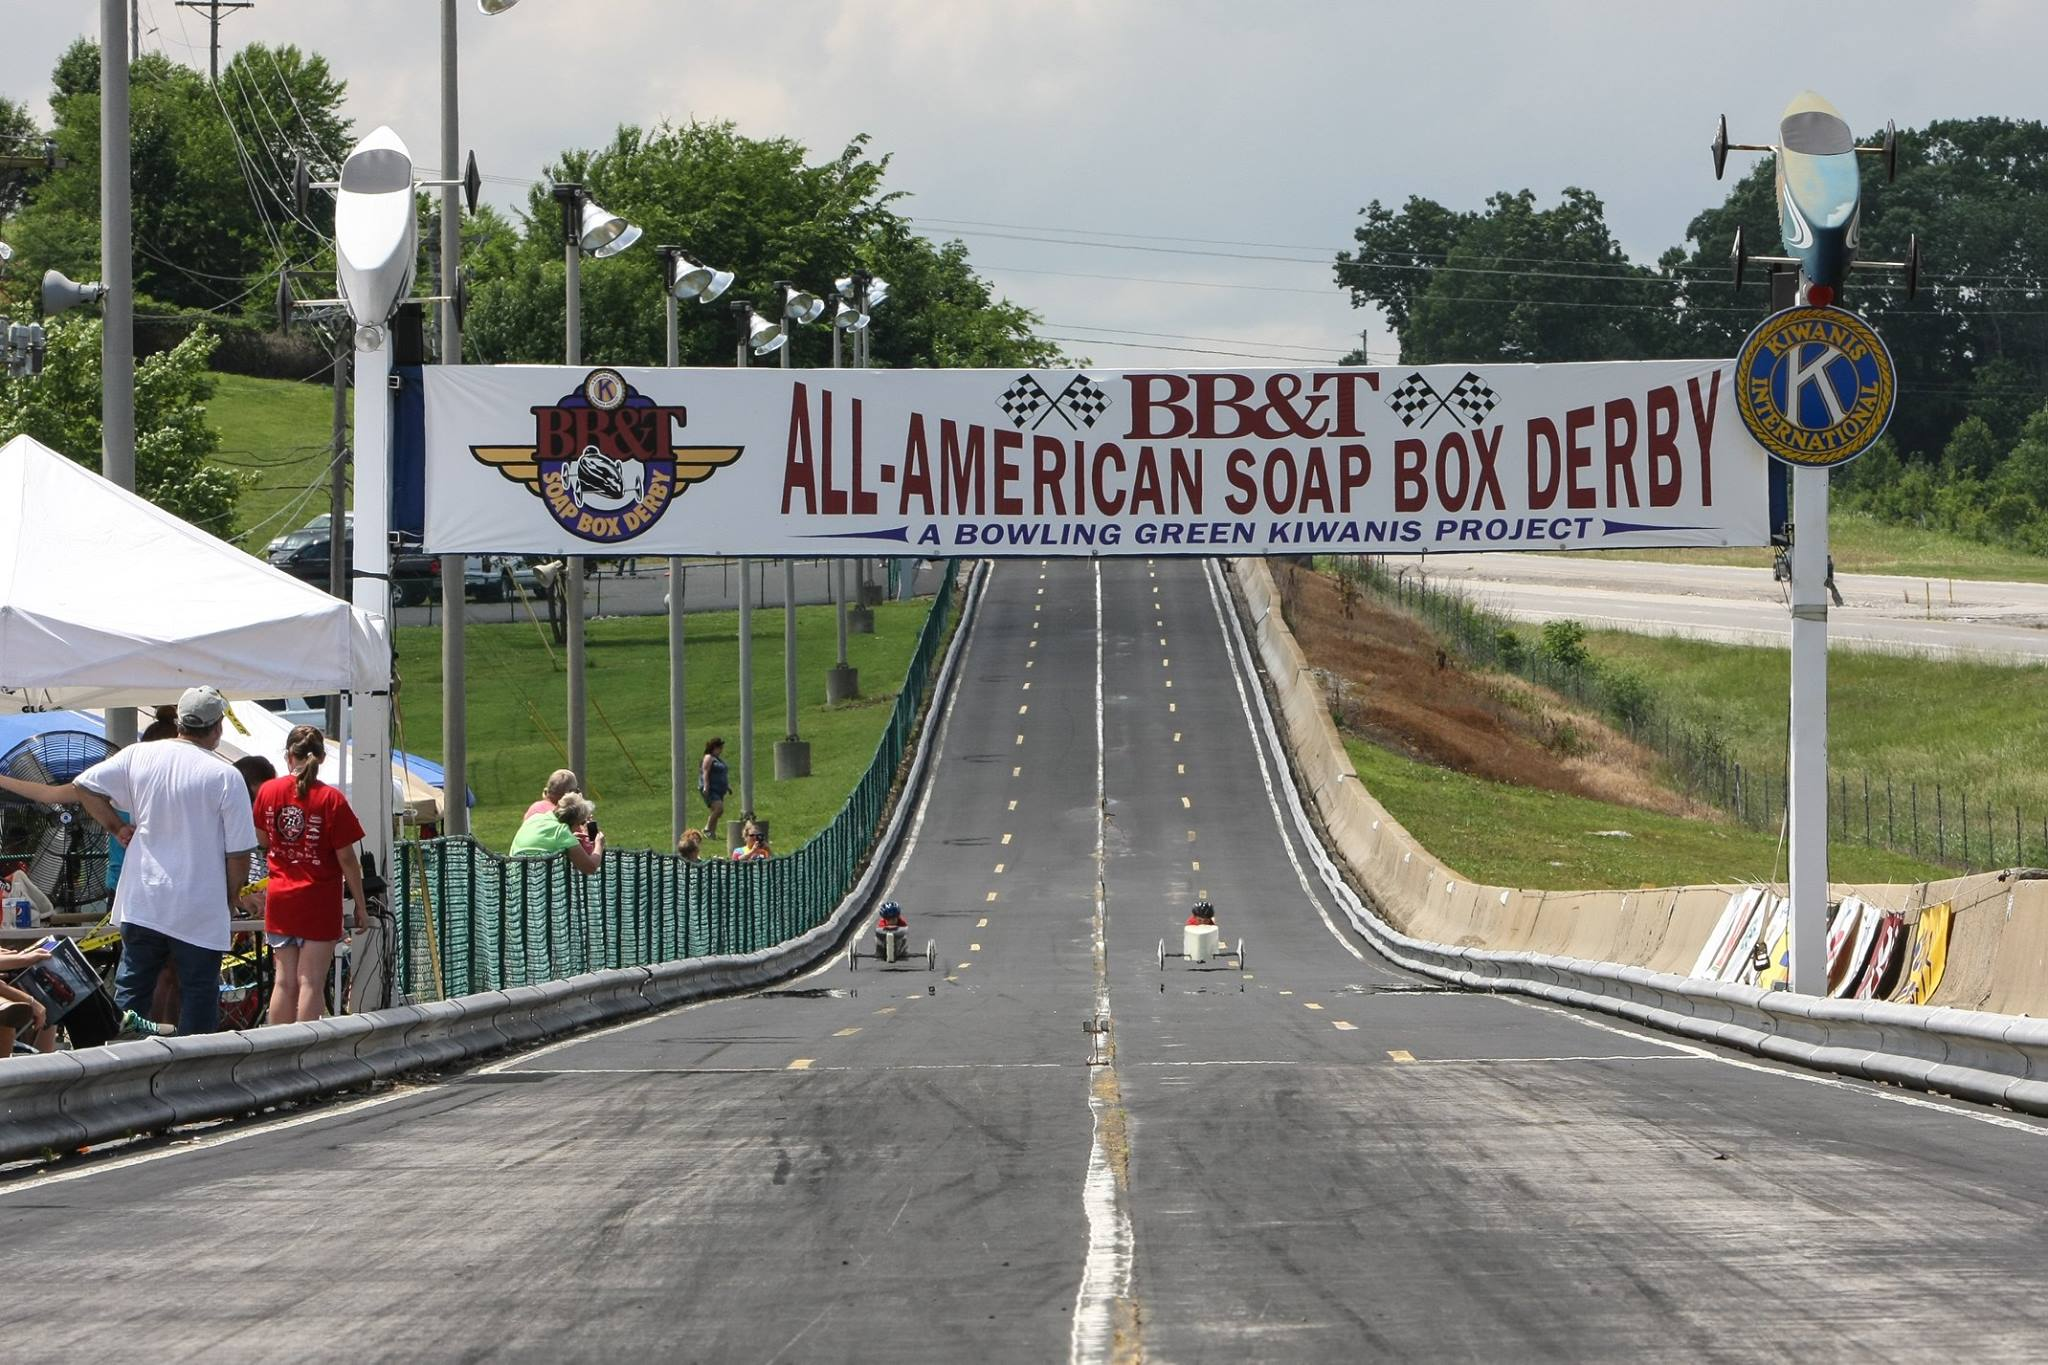 INTERVIEW: April talks about All-American Soap Box Derby